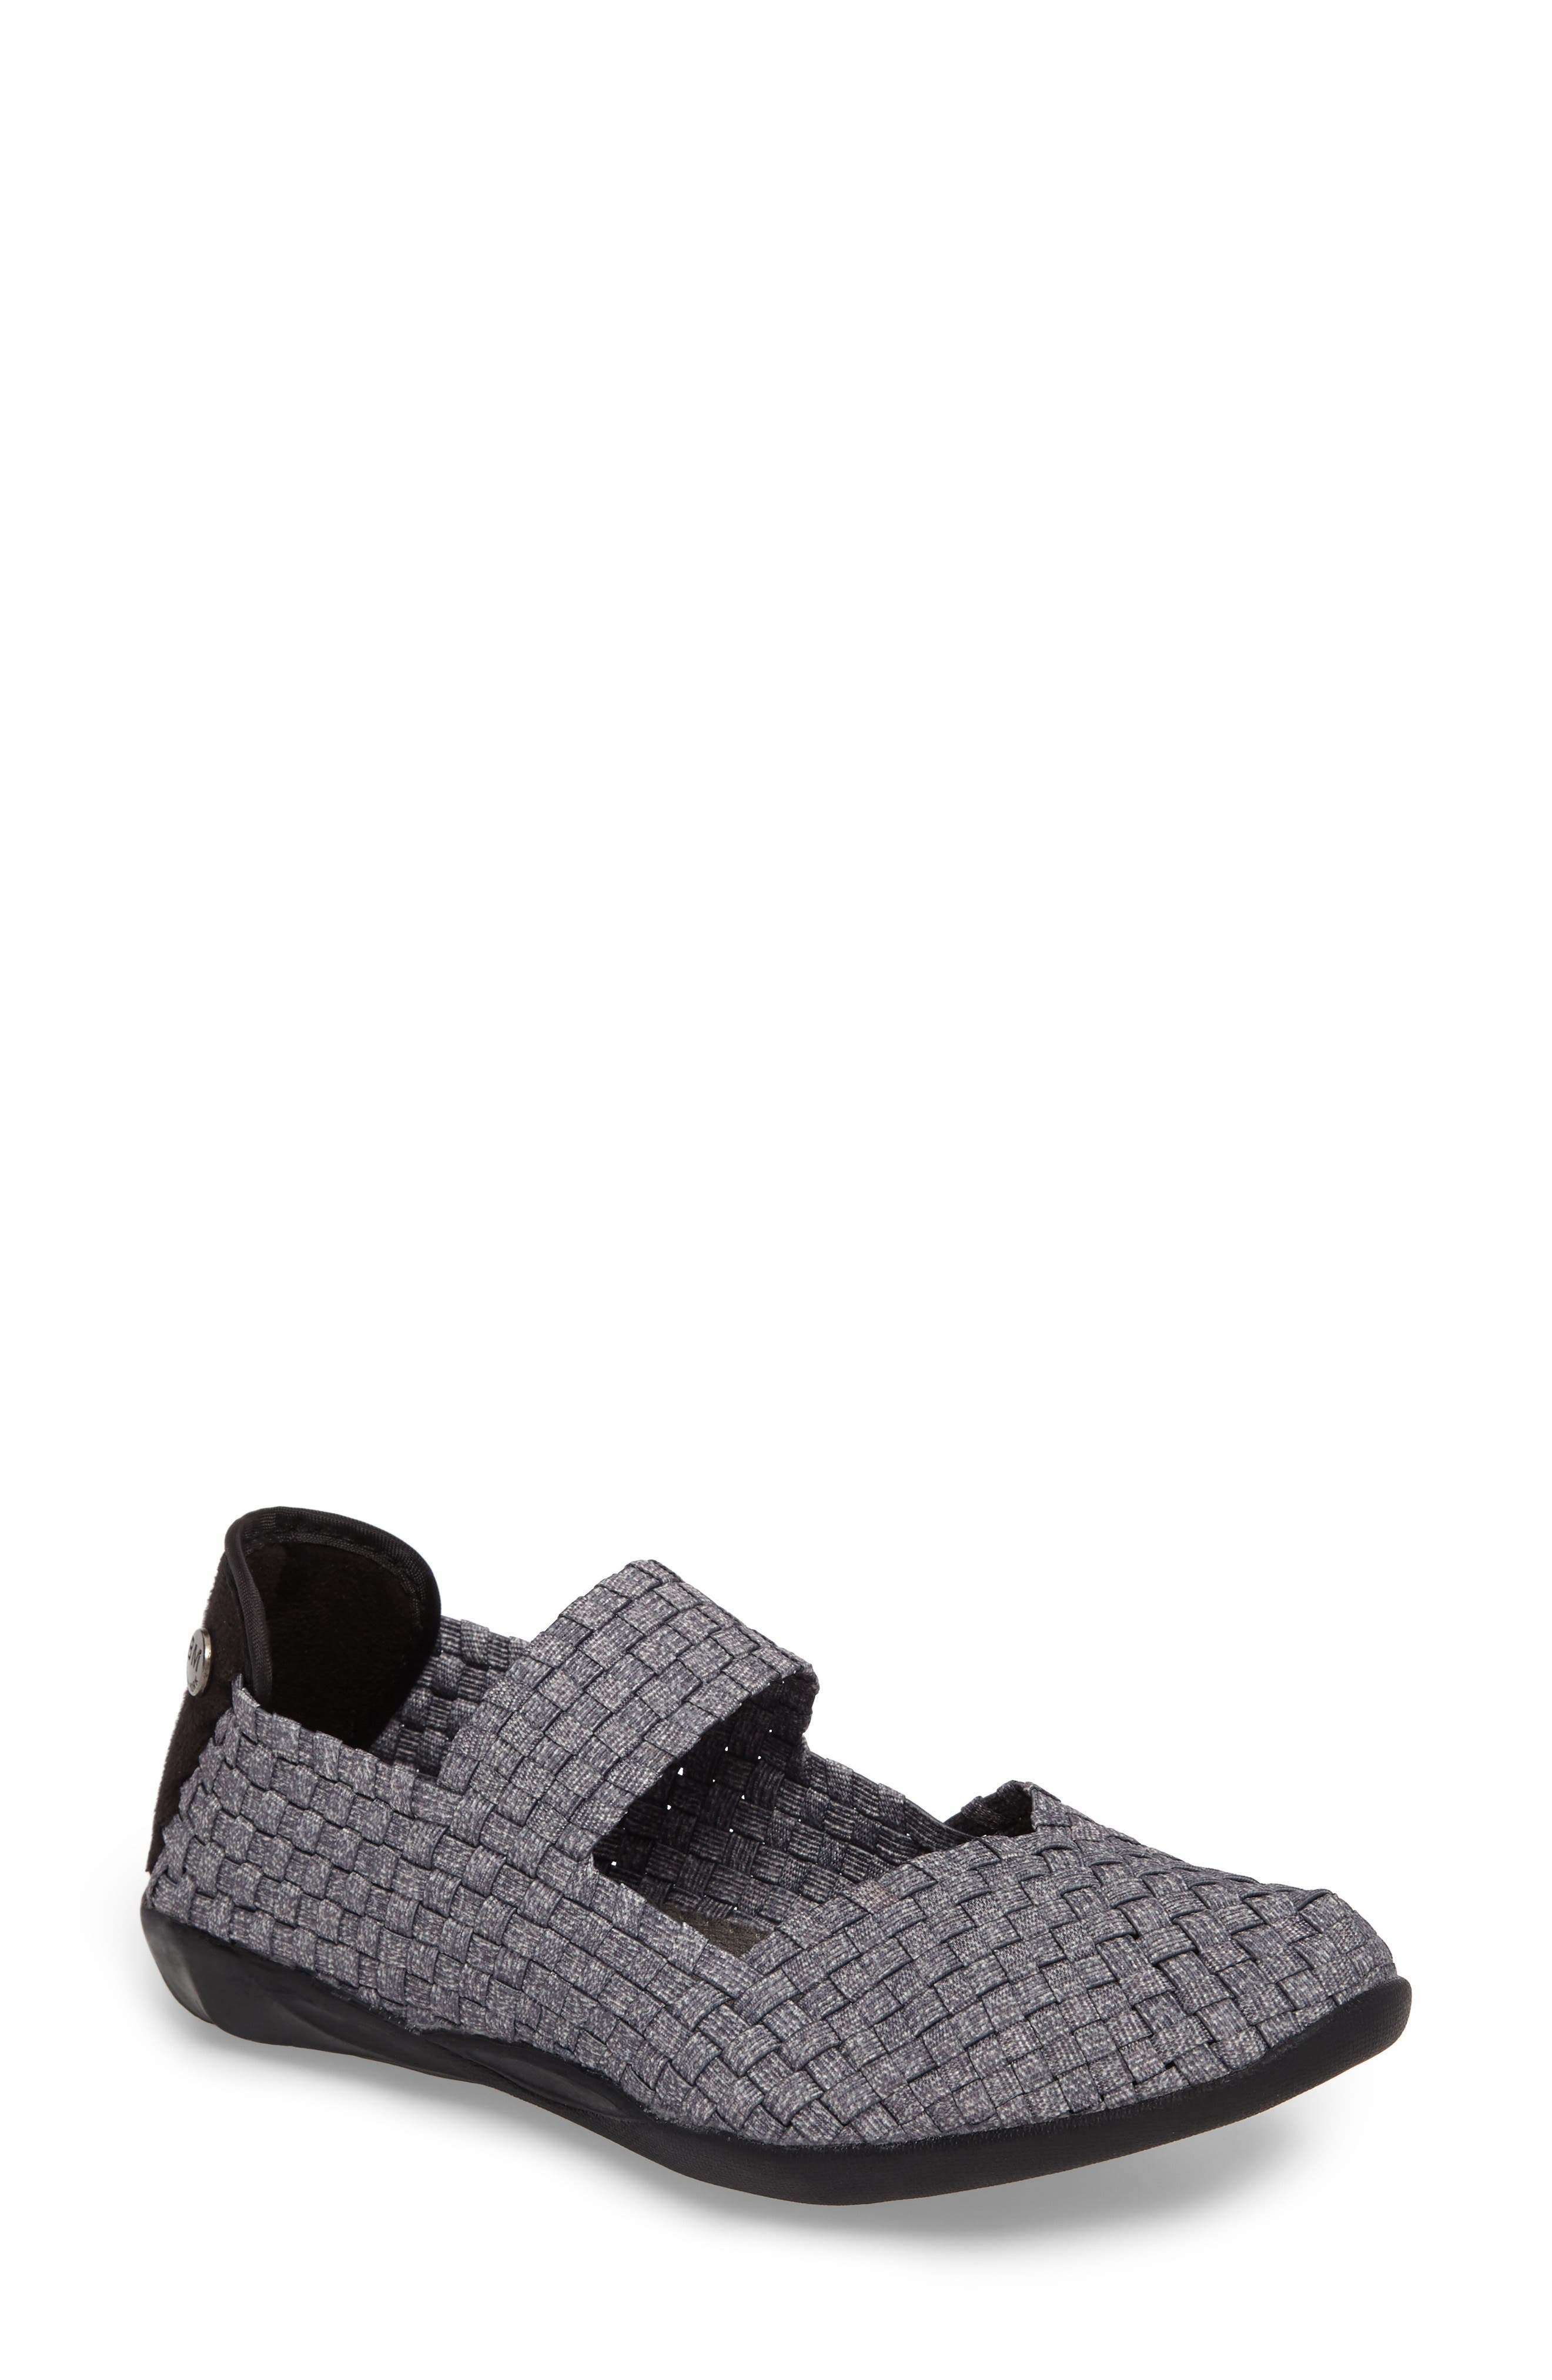 'Cuddly' Sneaker,                             Main thumbnail 1, color,                             HEATHER GREY FABRIC